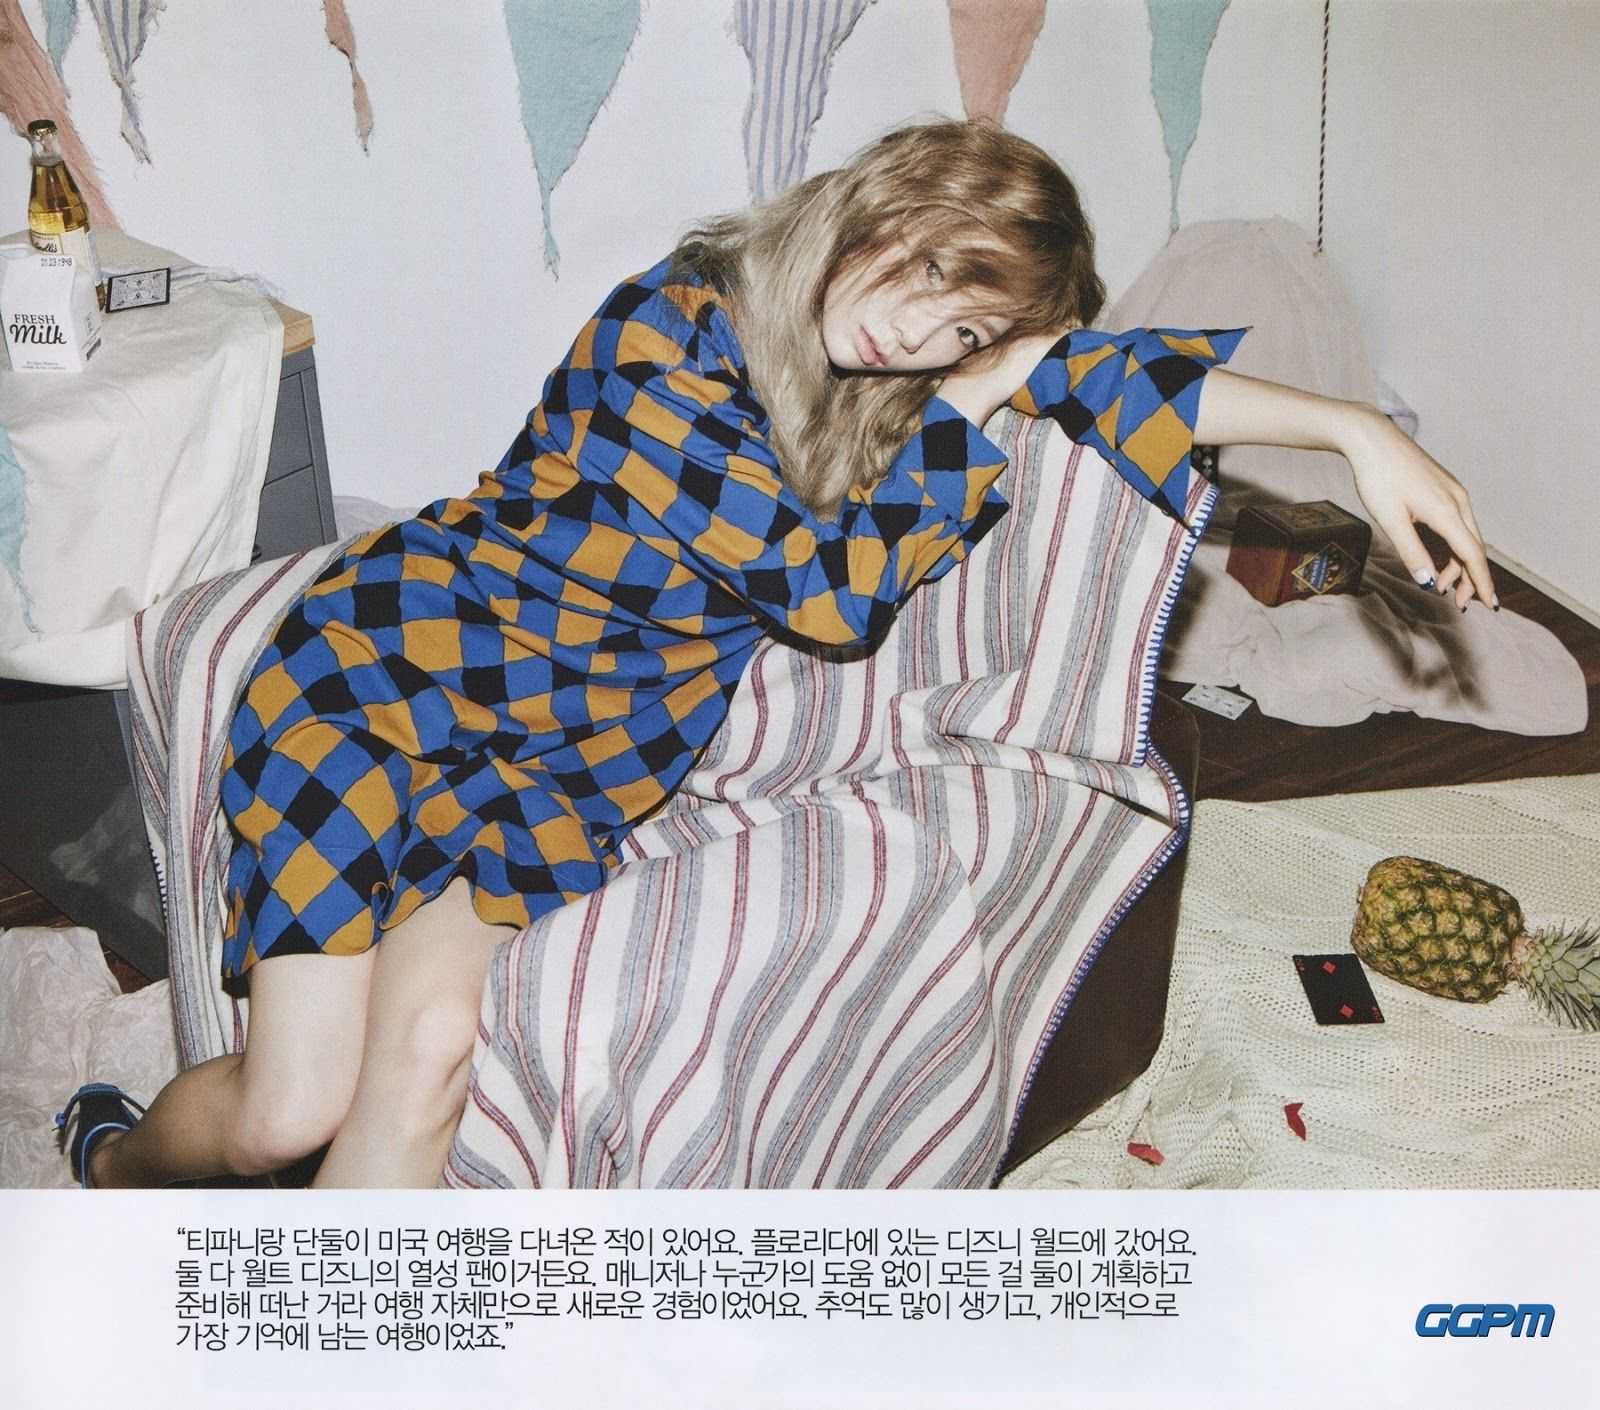 Taeyeon CeCi 「Nonetheless nonchalant (Taeyeon-like)」 September.2016 - HQ SCANS (18PIC) • GGPM